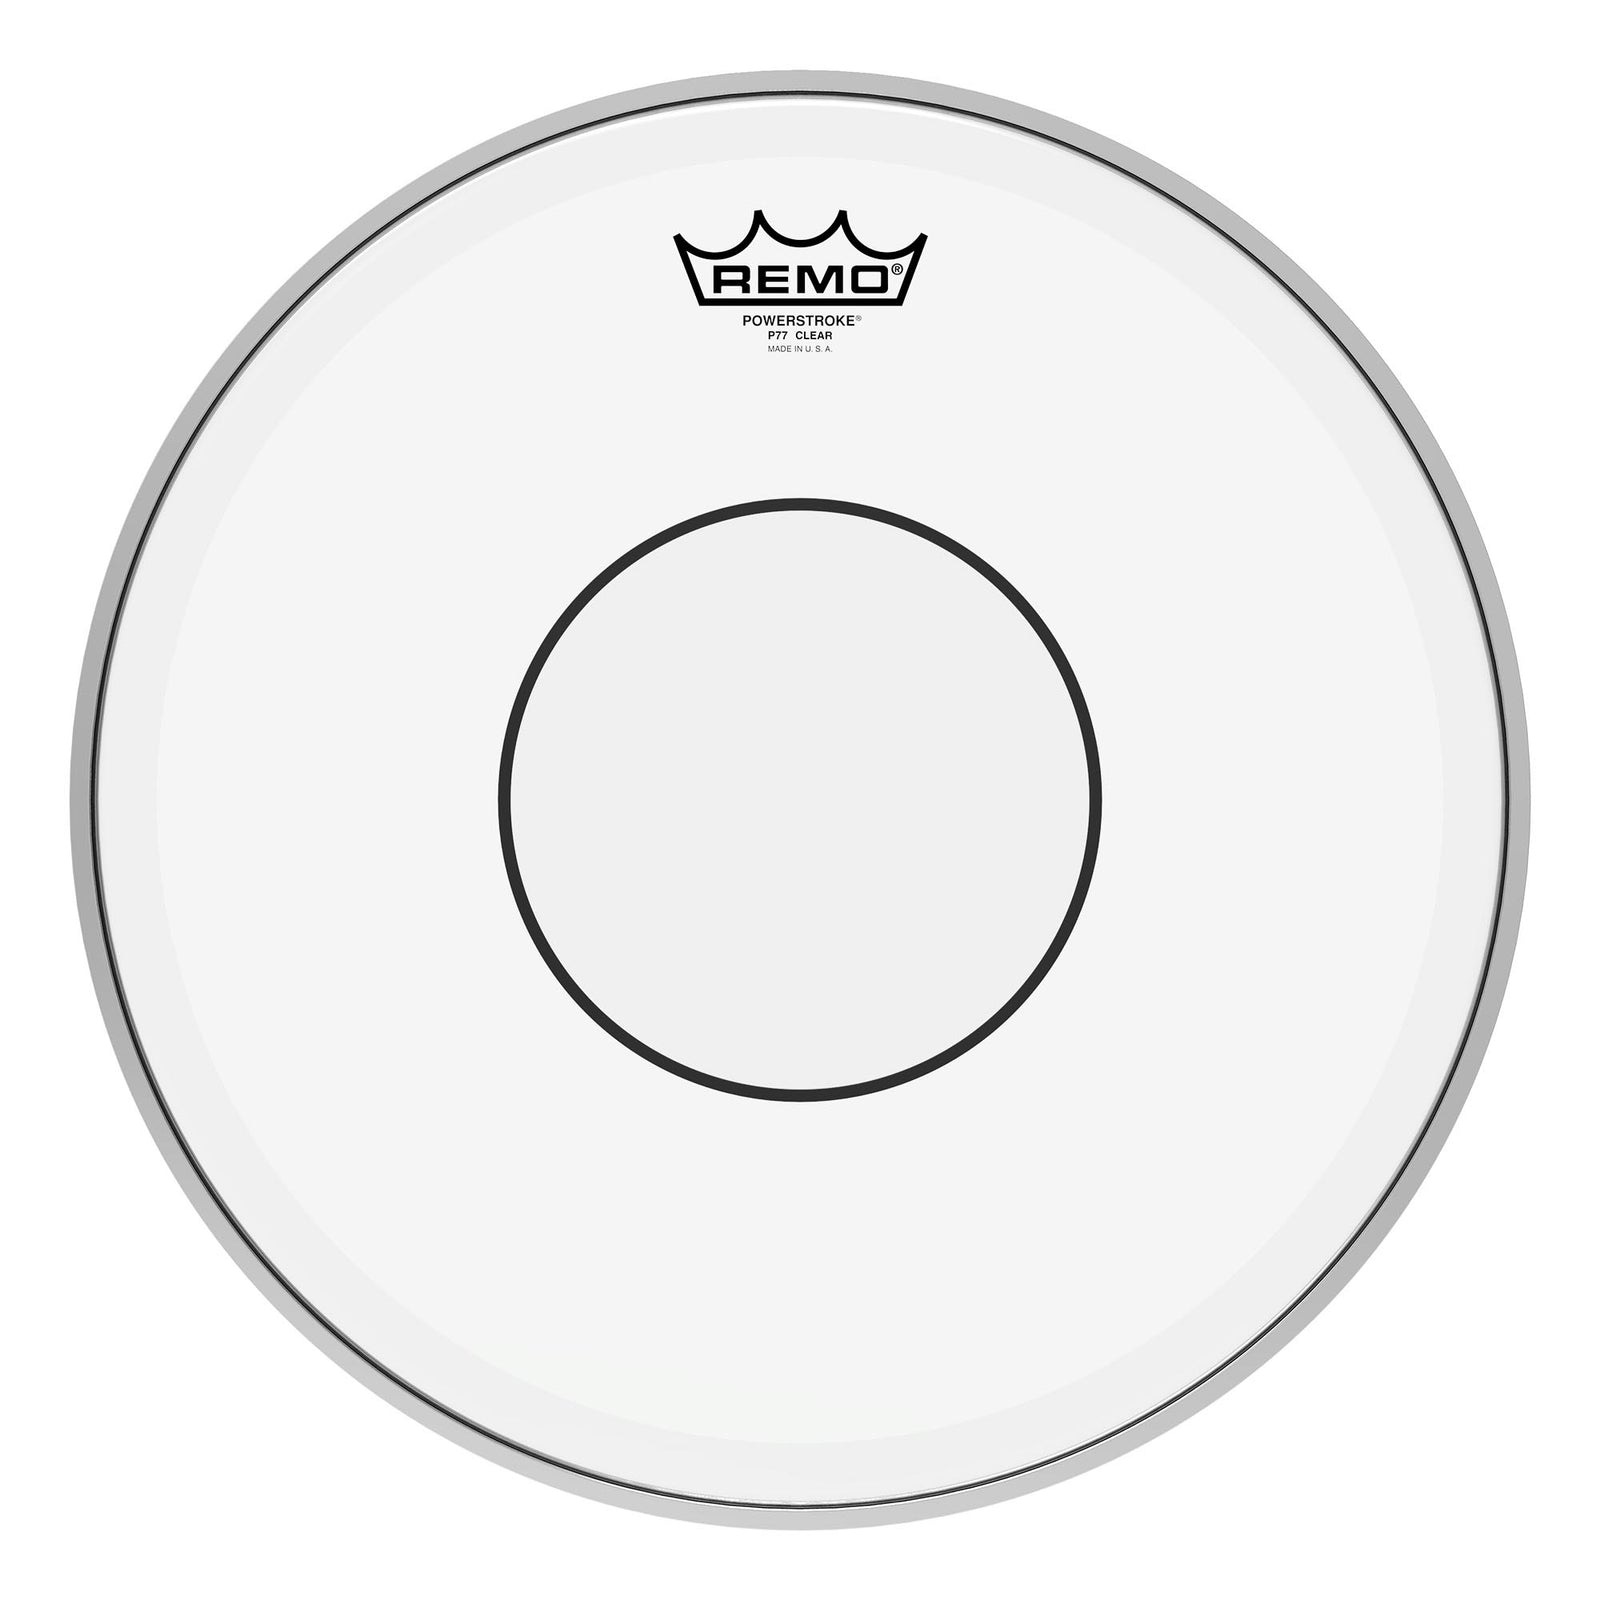 "Remo 14"" Powerstroke 77 Clear Dot Drumhead - Top Clear Dot"